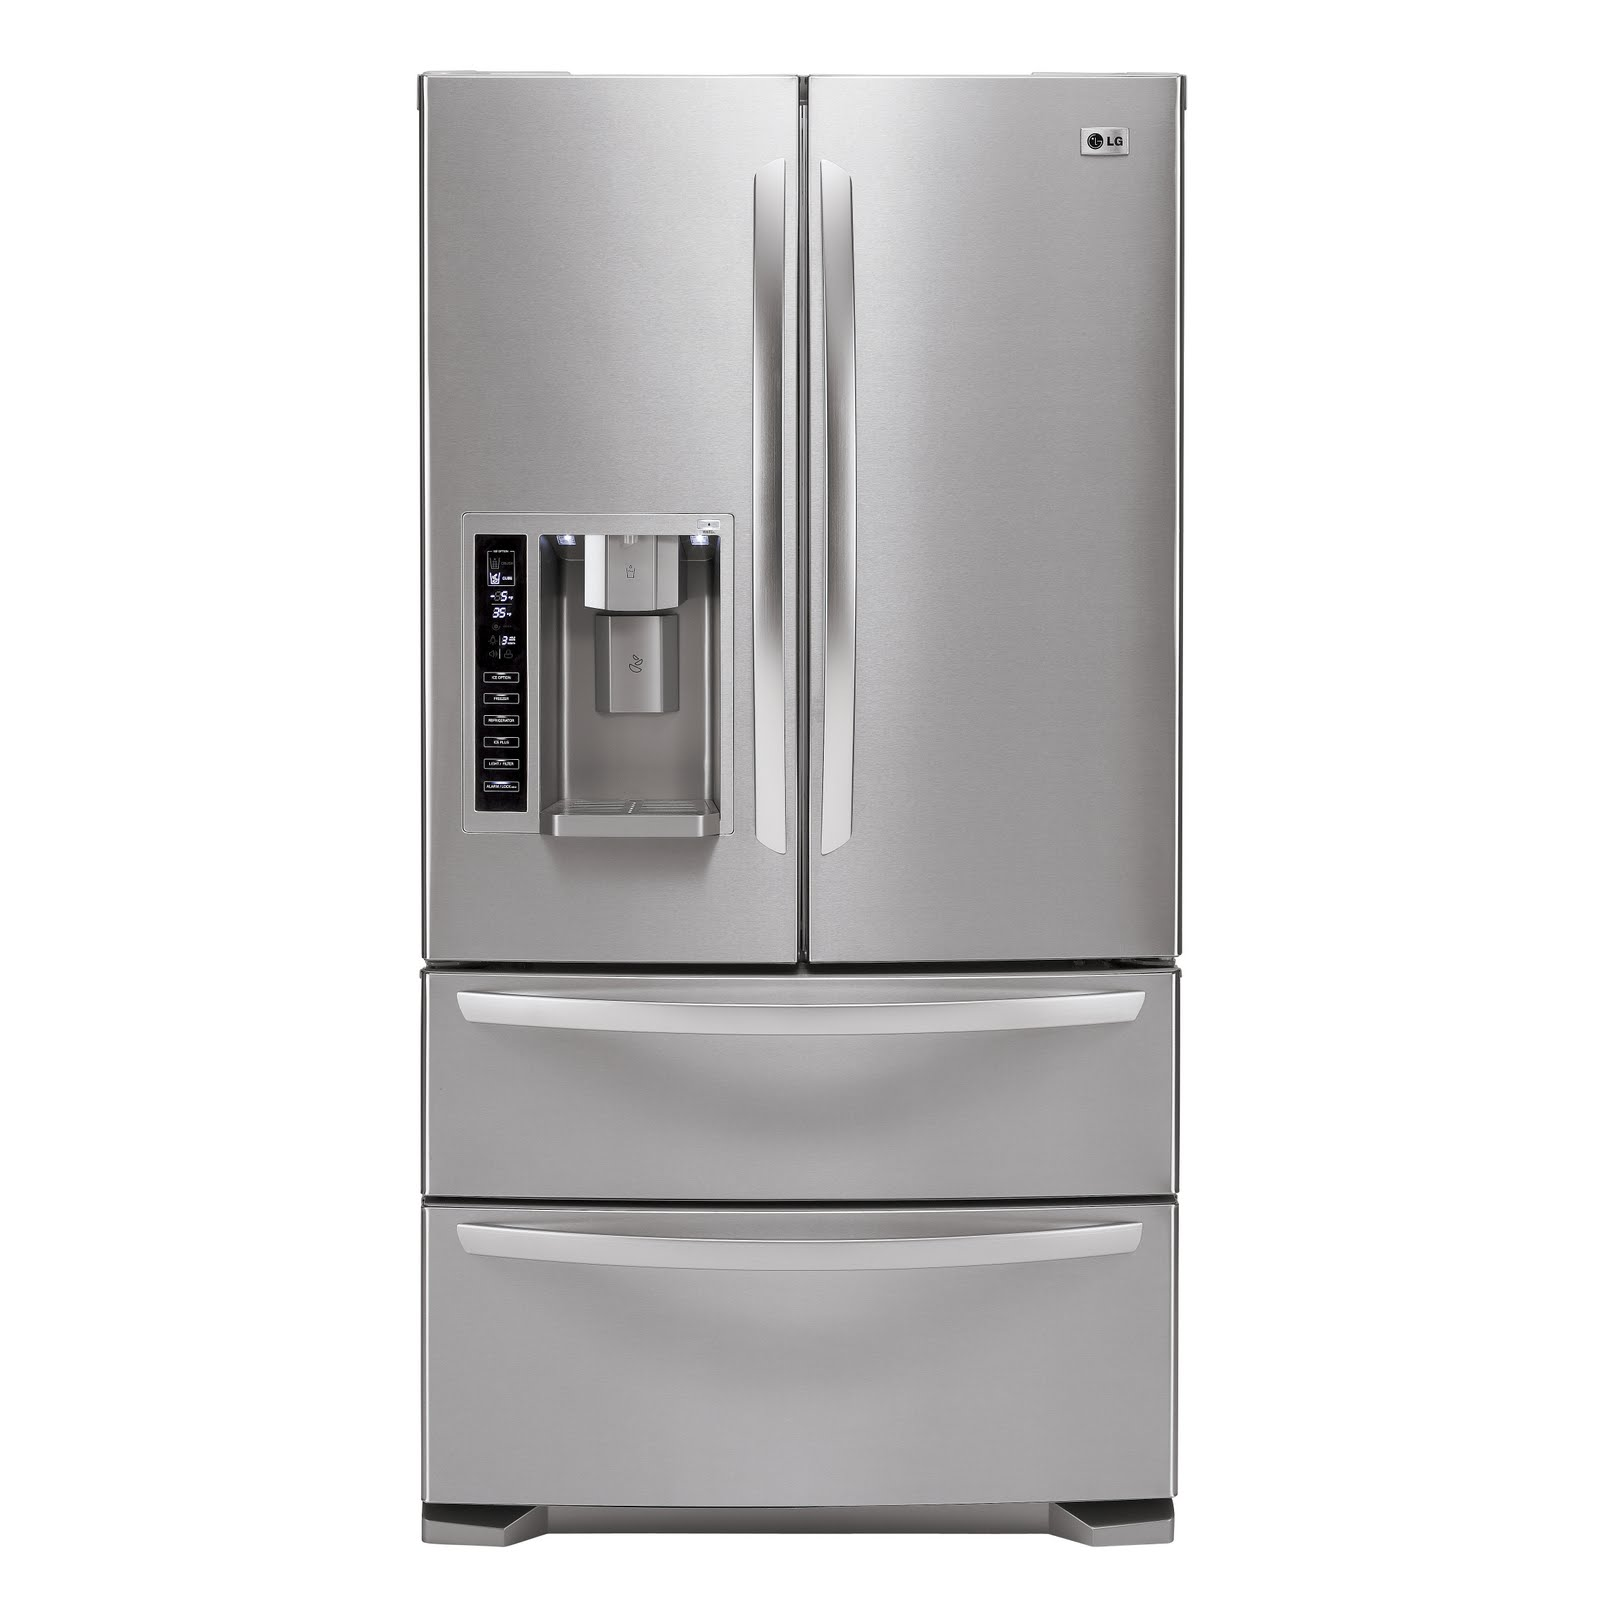 Best Small French Door Refrigerator Ultra cool Fun: Determining Top 10 Refrigerators ...